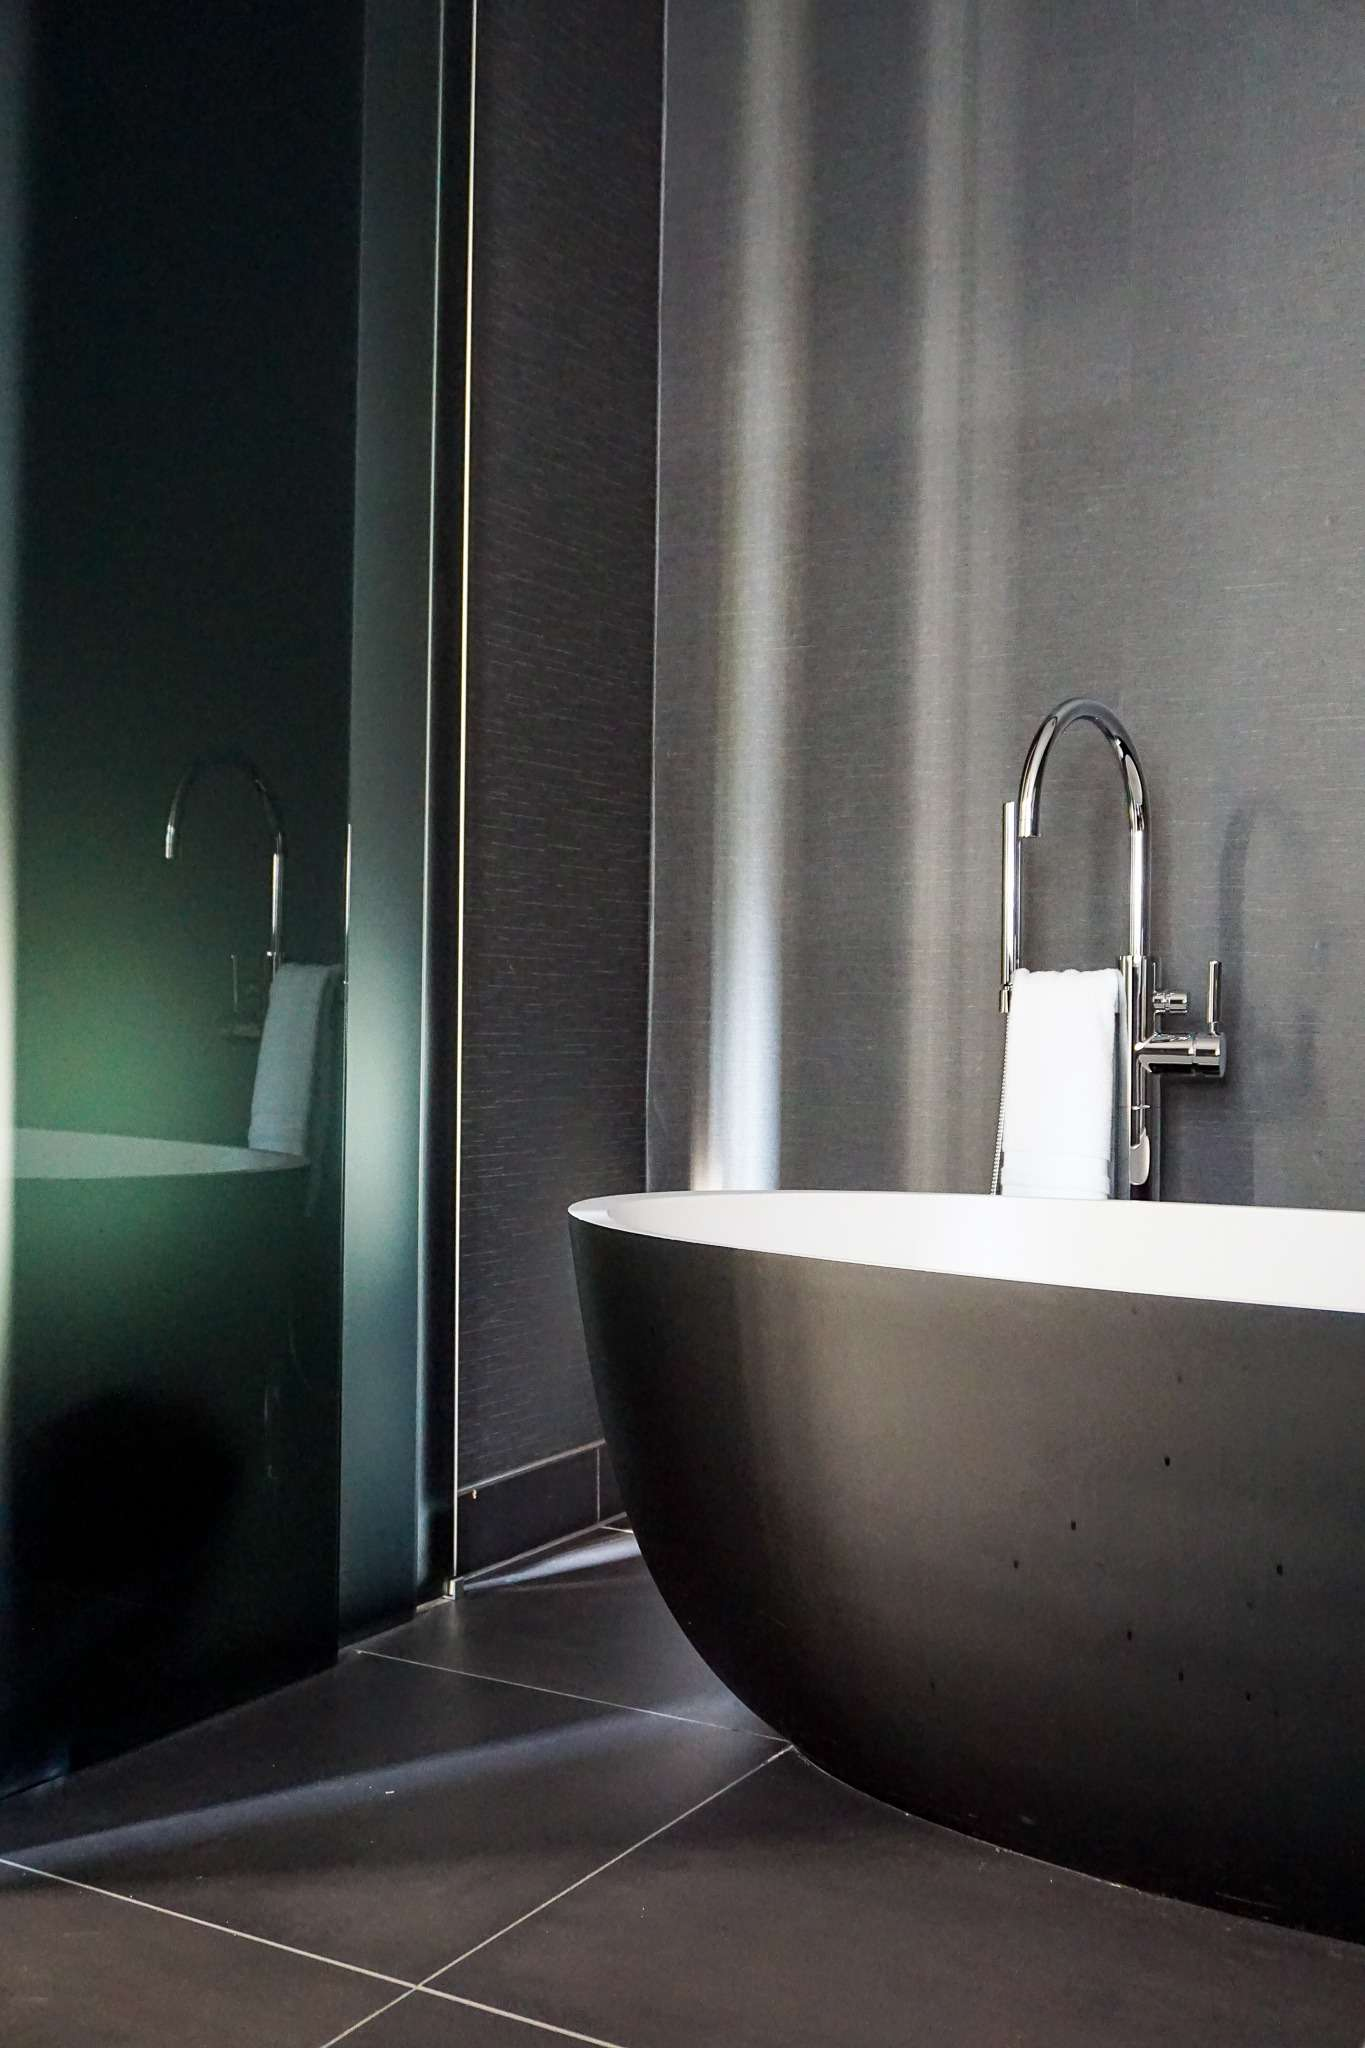 freestanding bathtub, black on the outside and white on the inside, next to a glass door at Kazerne hotel in Eindhoven